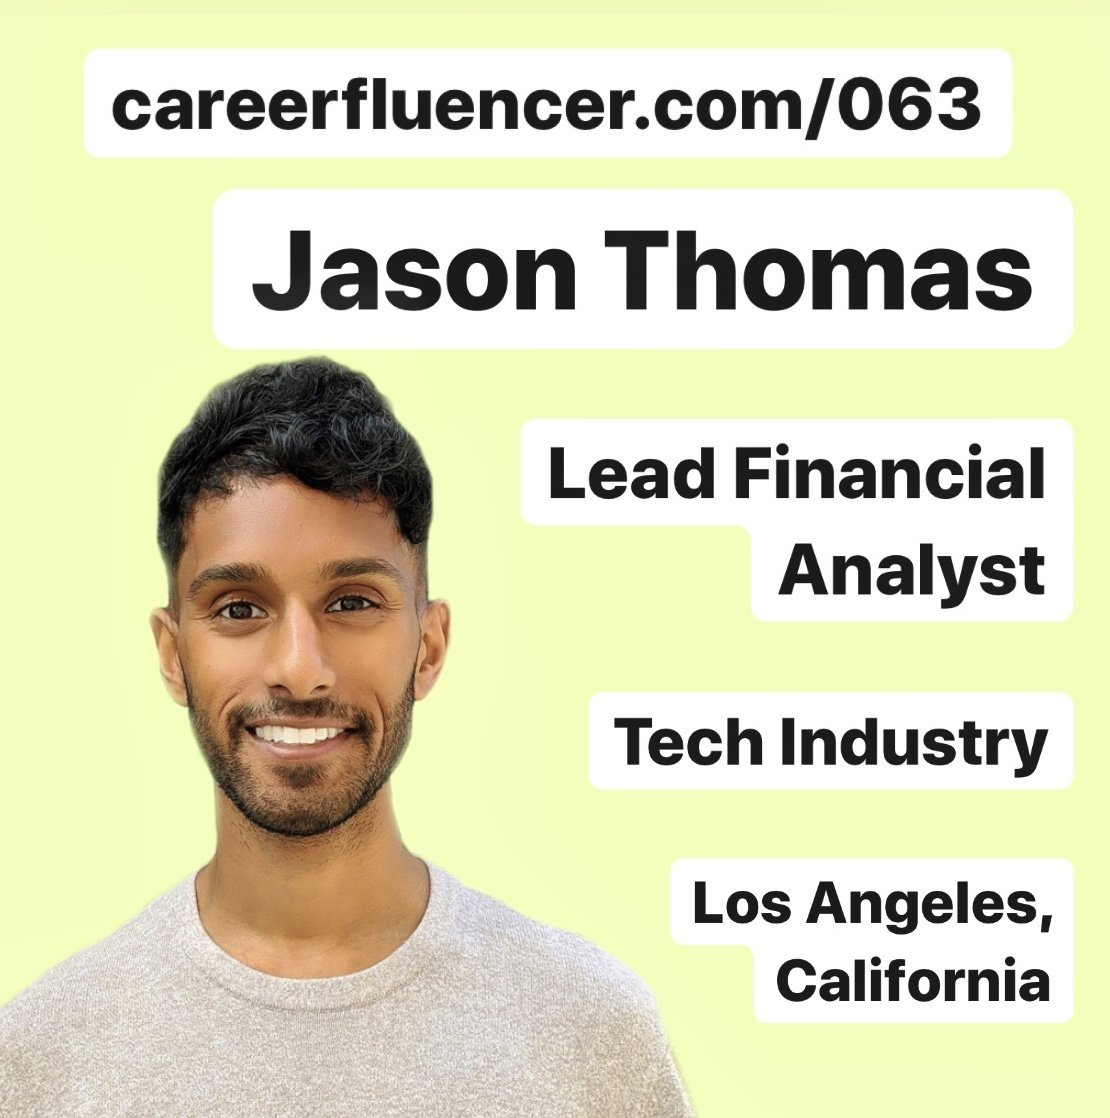 Competitive Career Paths Startup Podcast Episode Jason Thomas Tech Industry California Careerfluencer